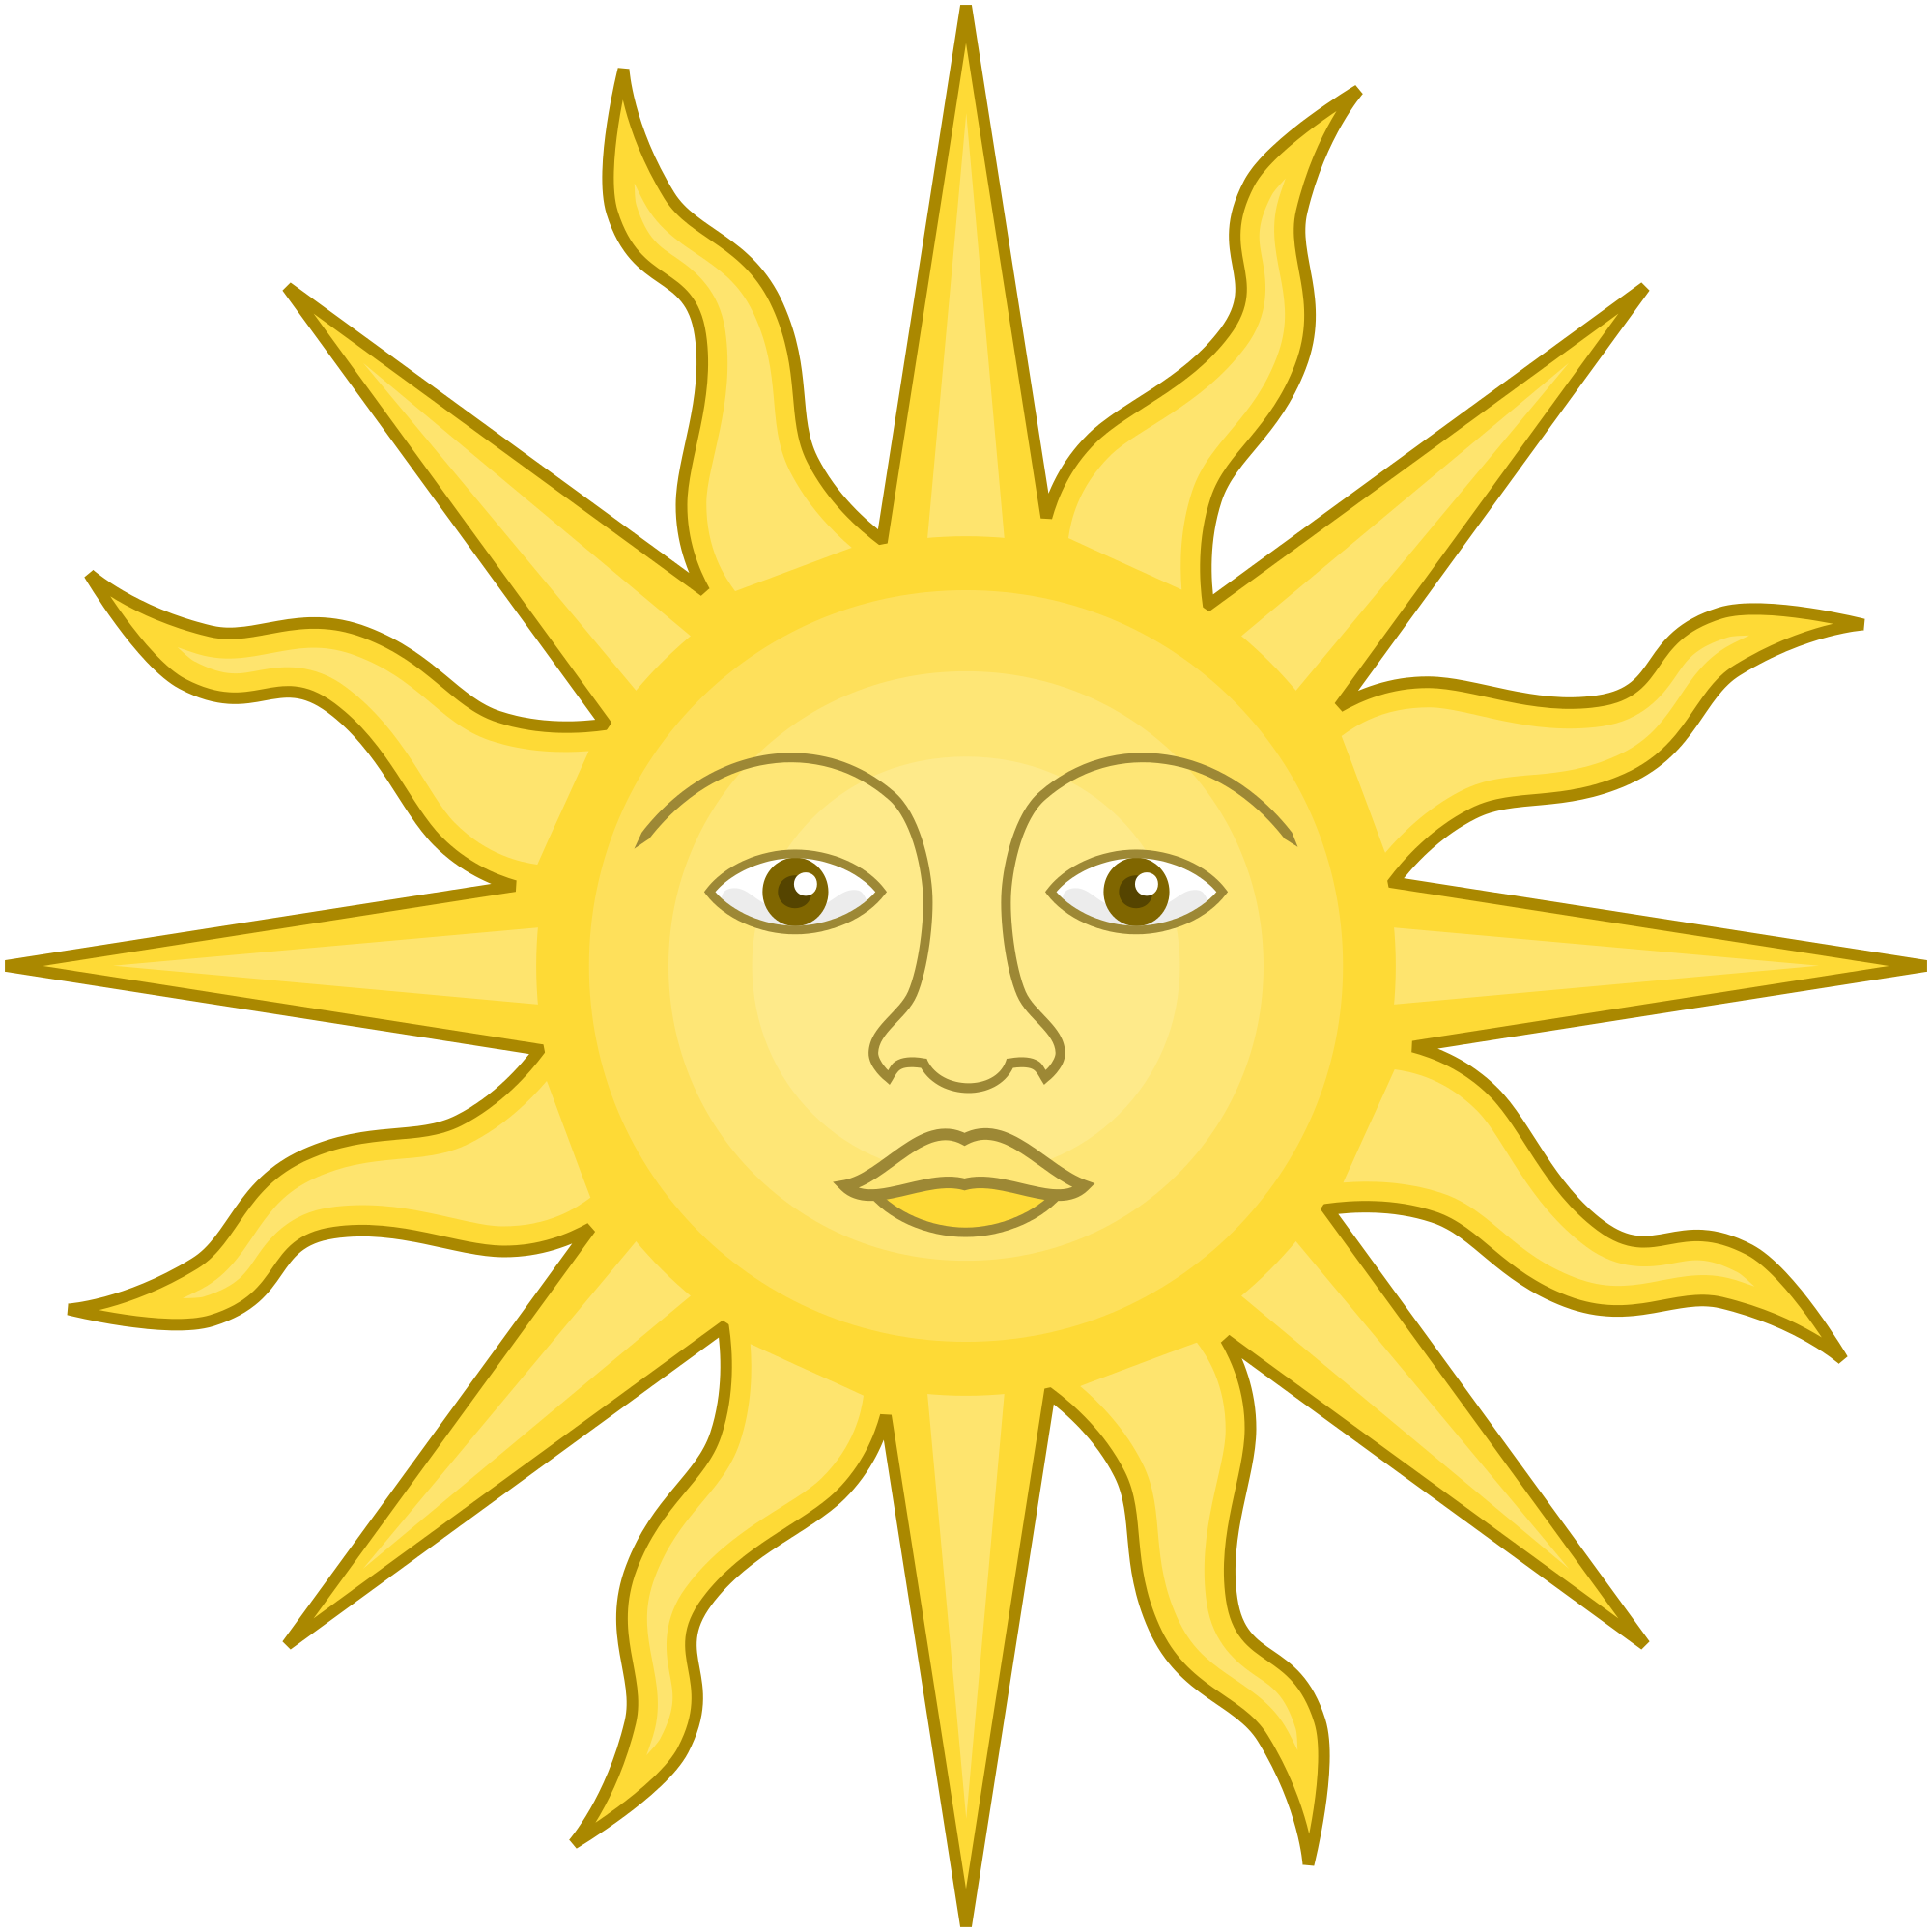 York clipart england. File sun of svg